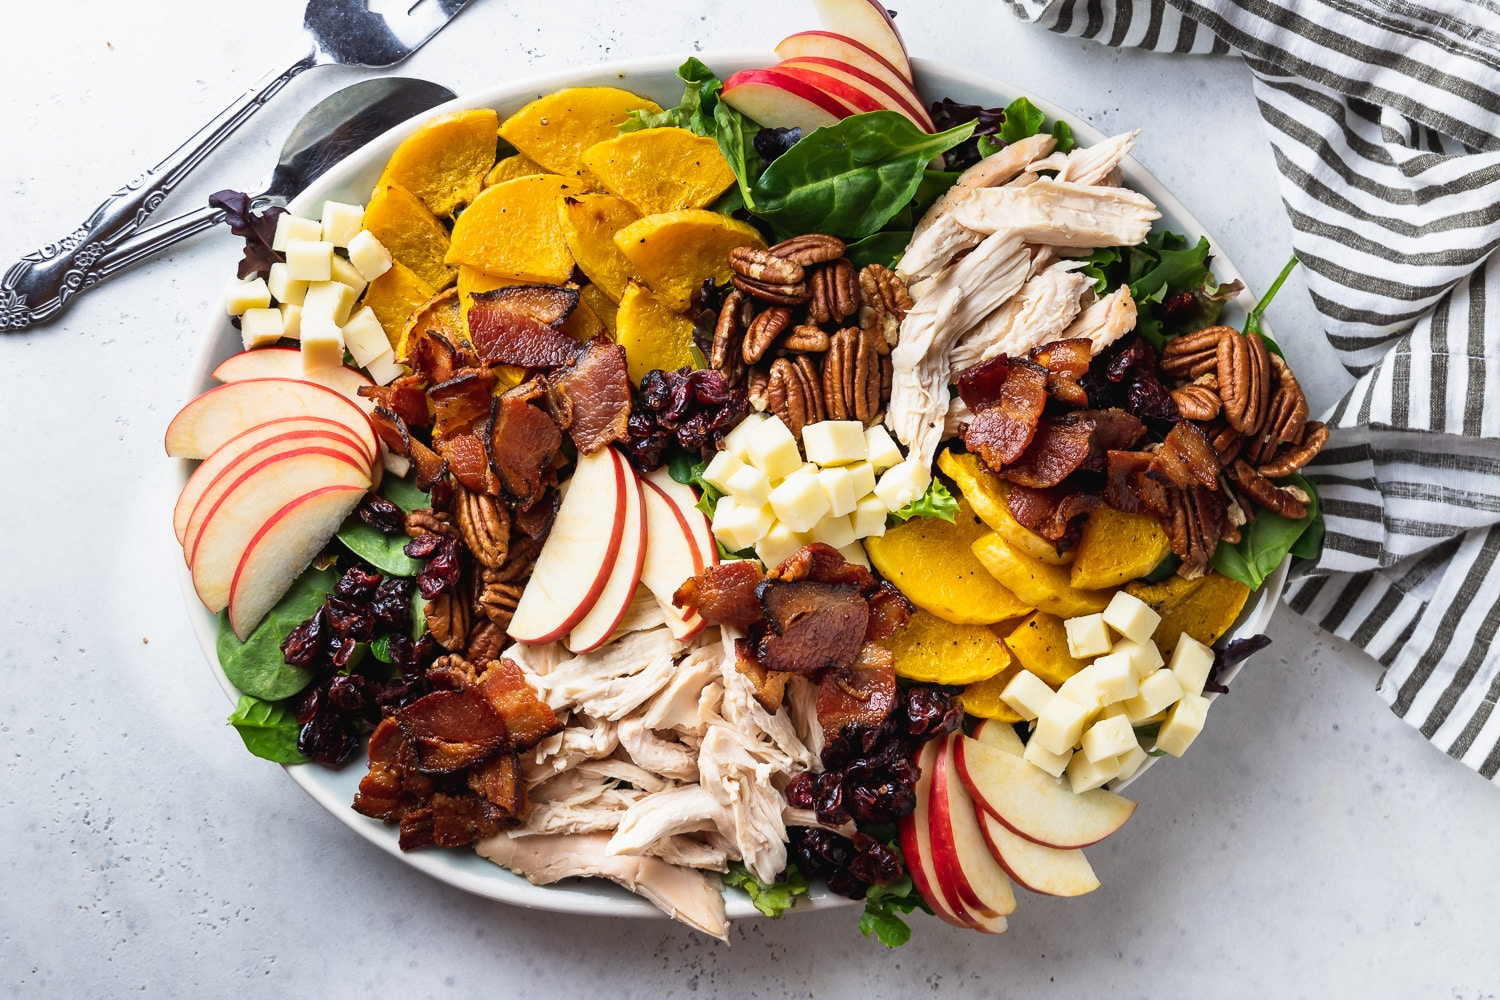 horizontal platter of composed salad